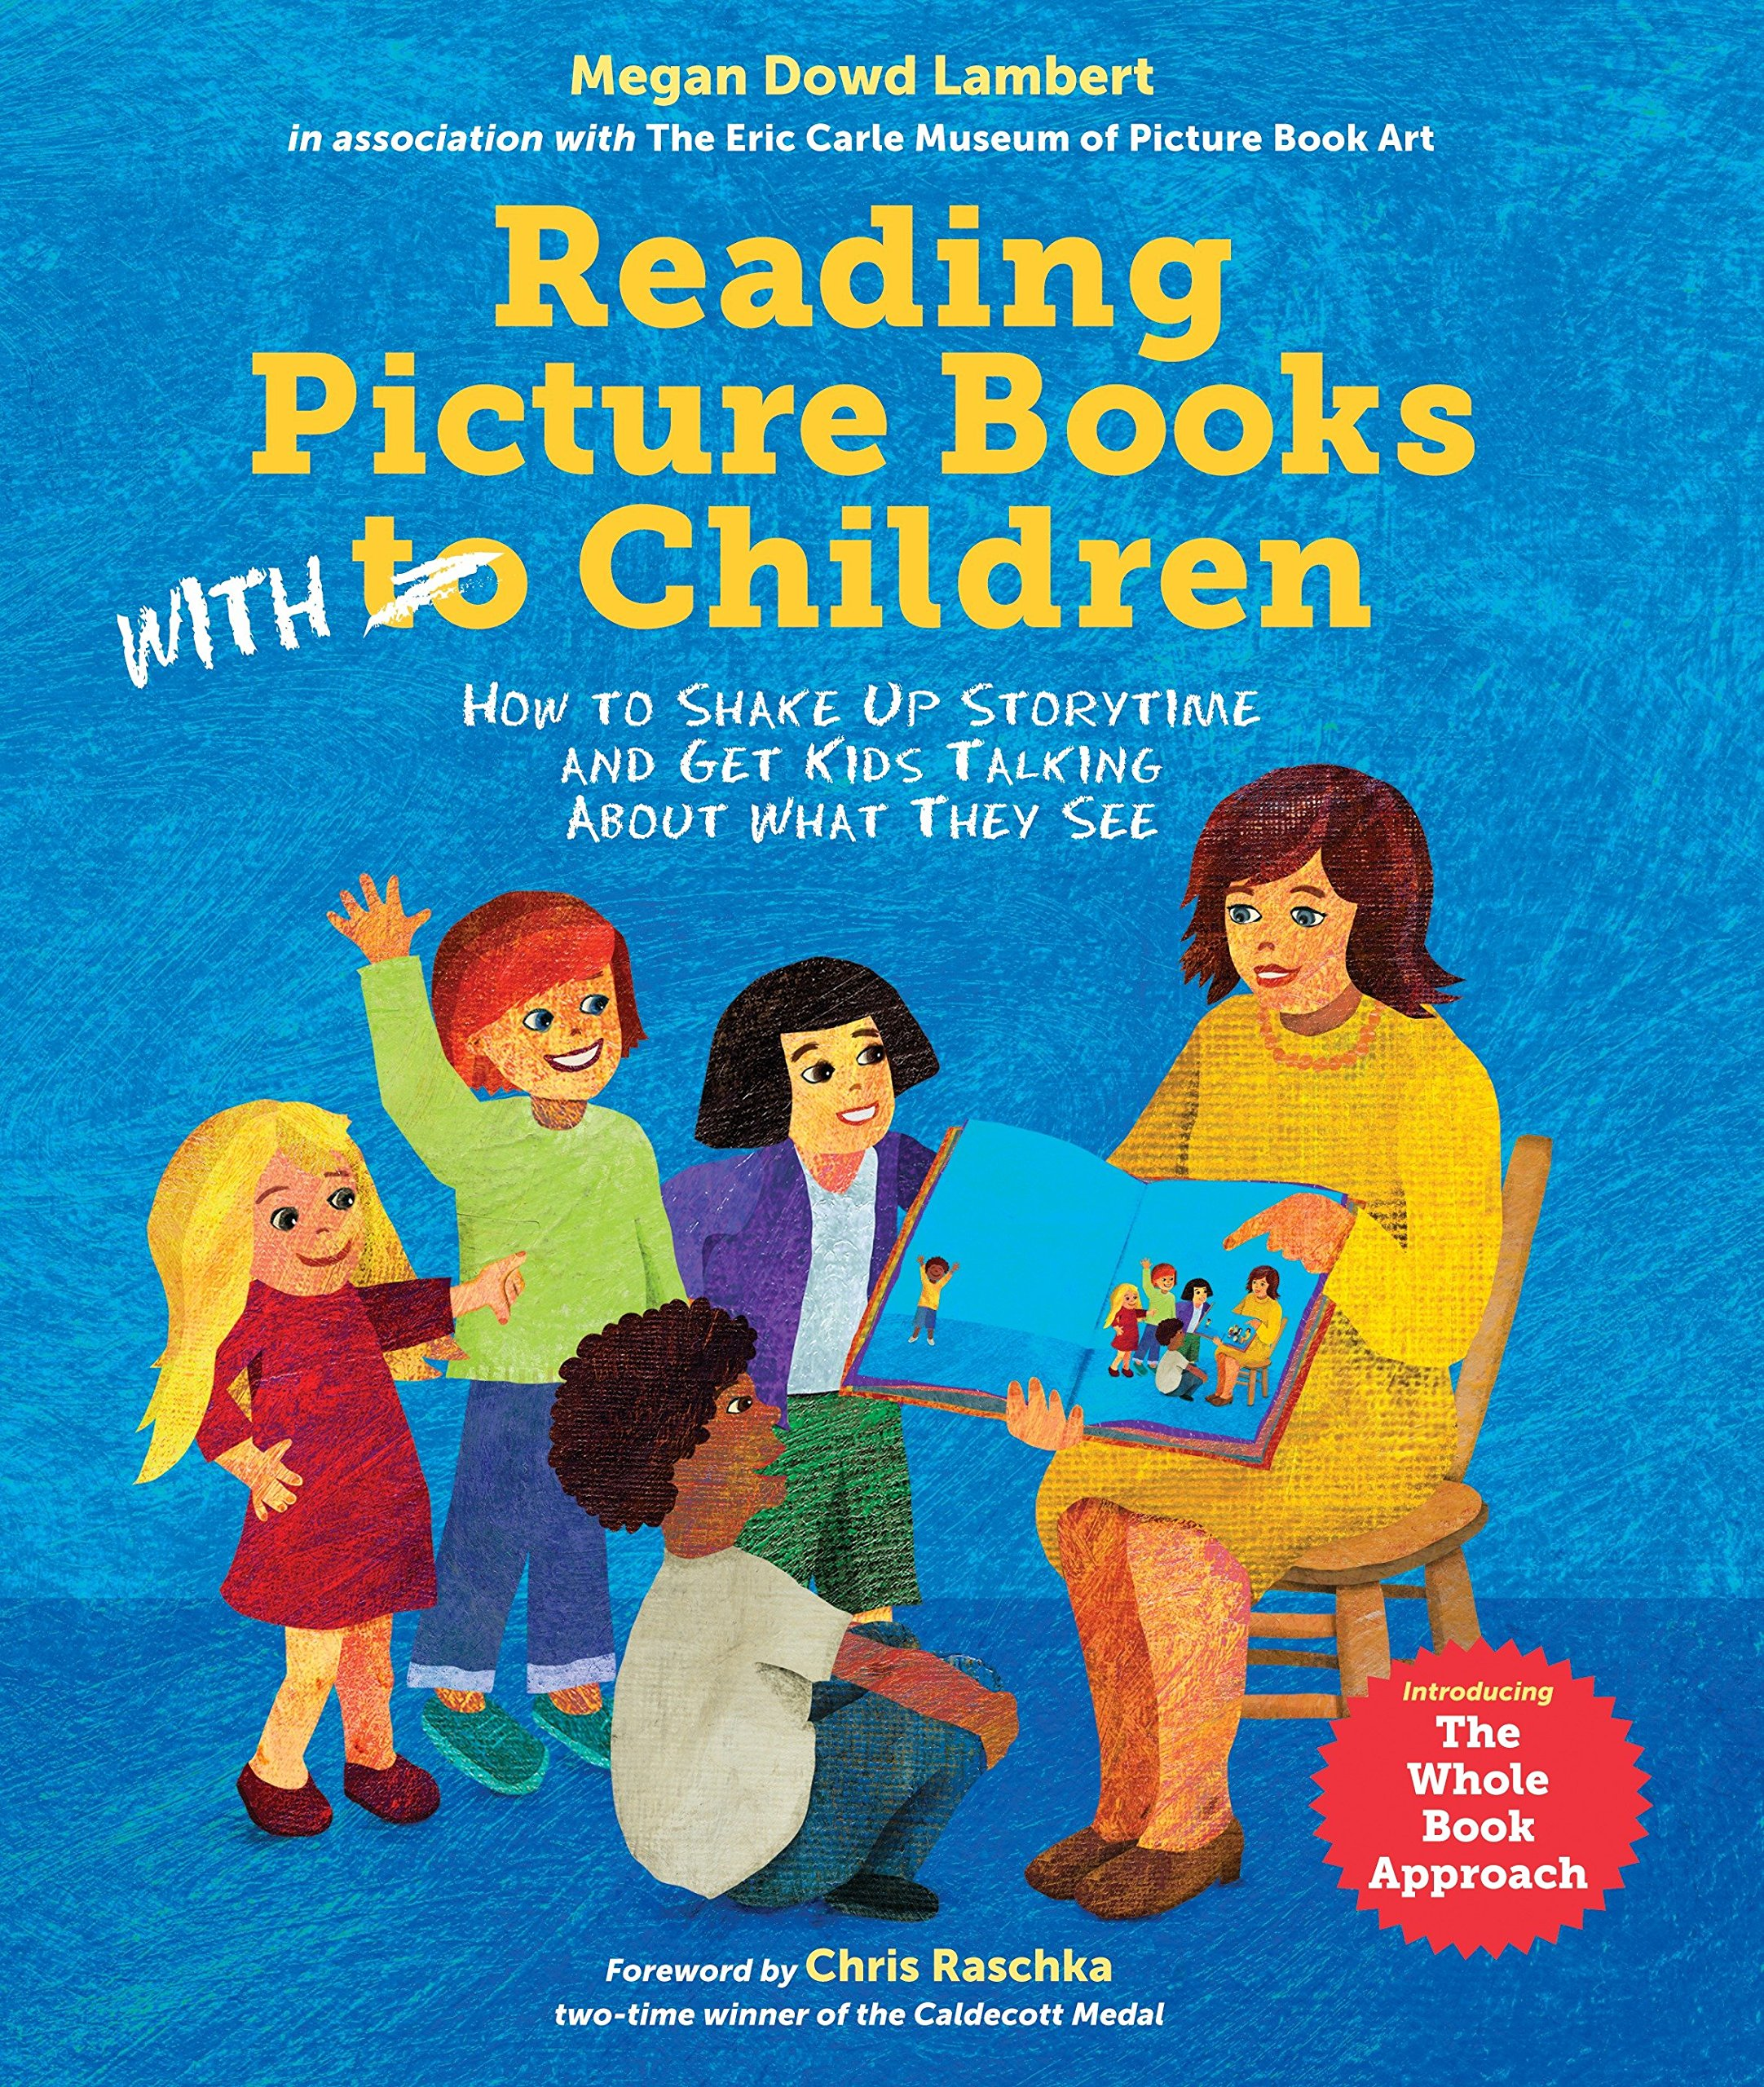 Download Reading Picture Books with Children: How to Shake Up Storytime and Get Kids Talking about What They See PDF